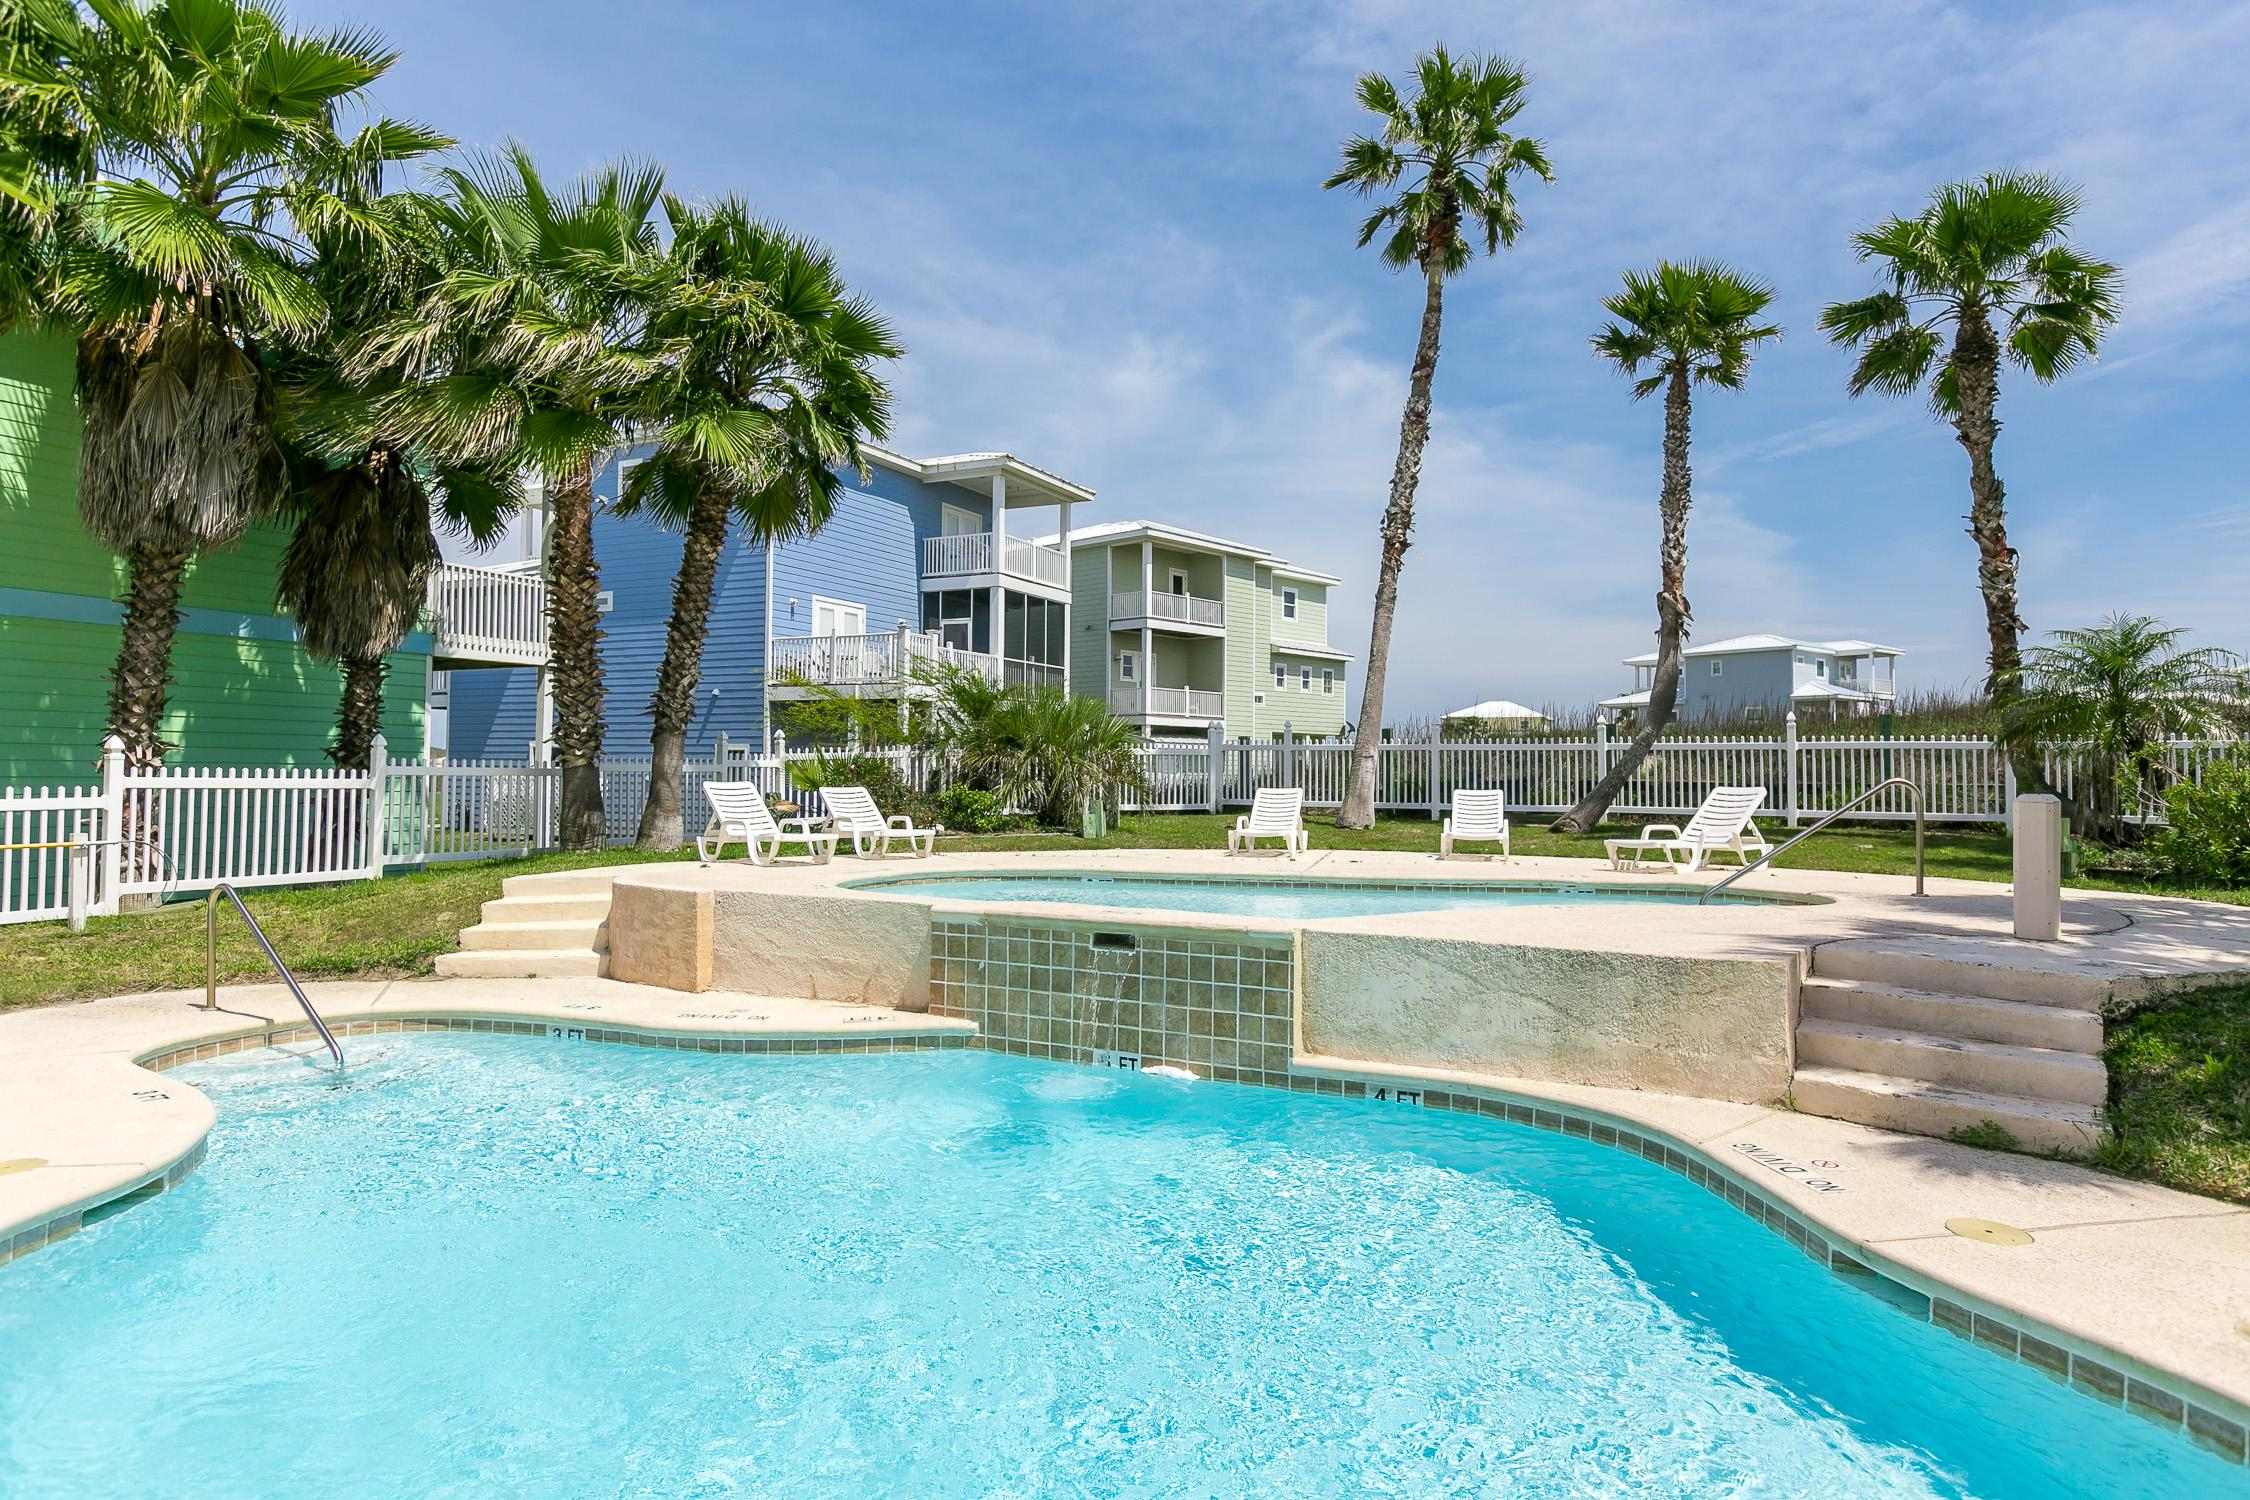 Property Image 2 - Spacious Contemporary Gulf-View Home with Scenic Deck